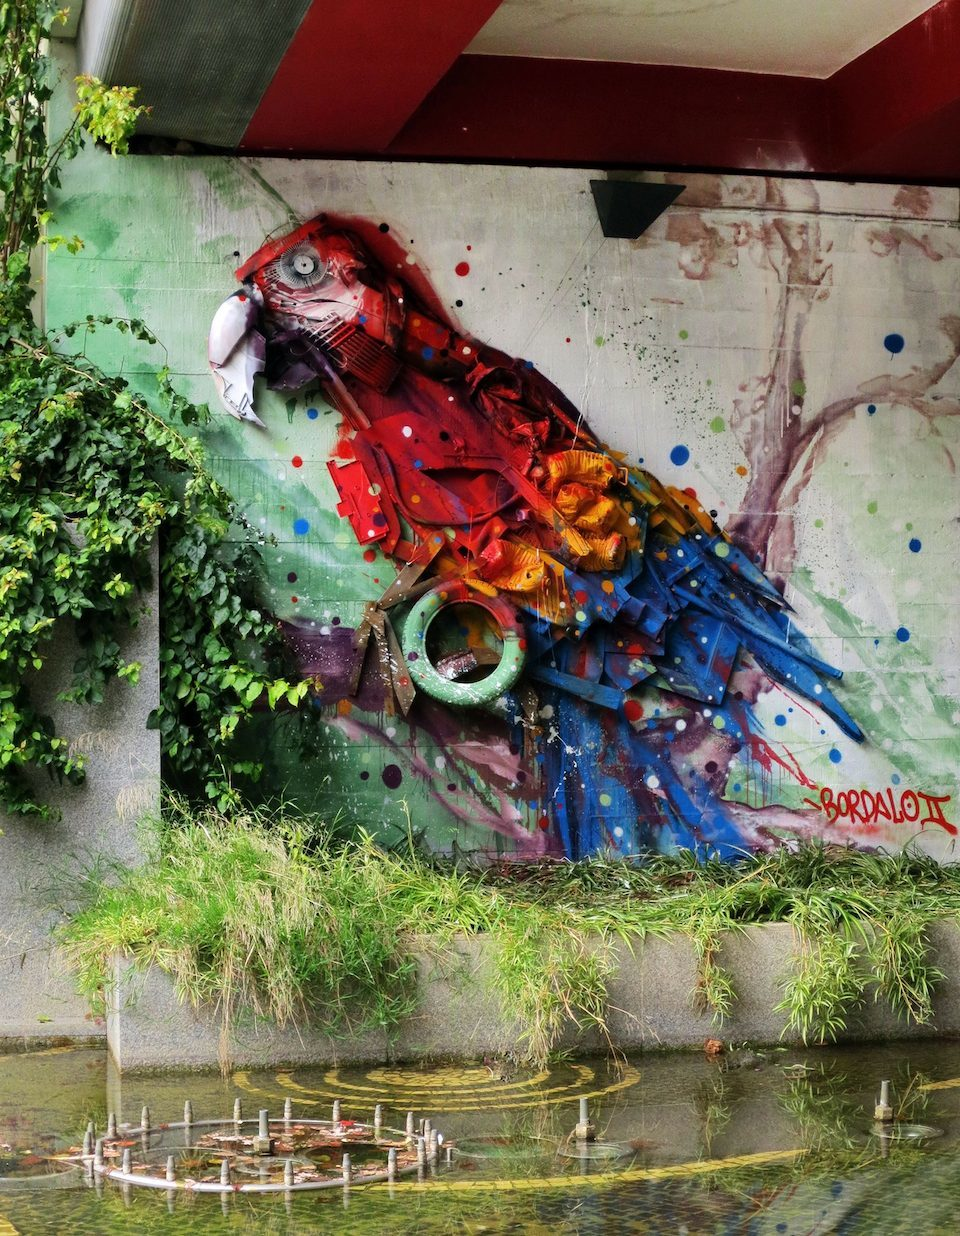 Street Art by Bordalo Segundo in Portugal 5685678